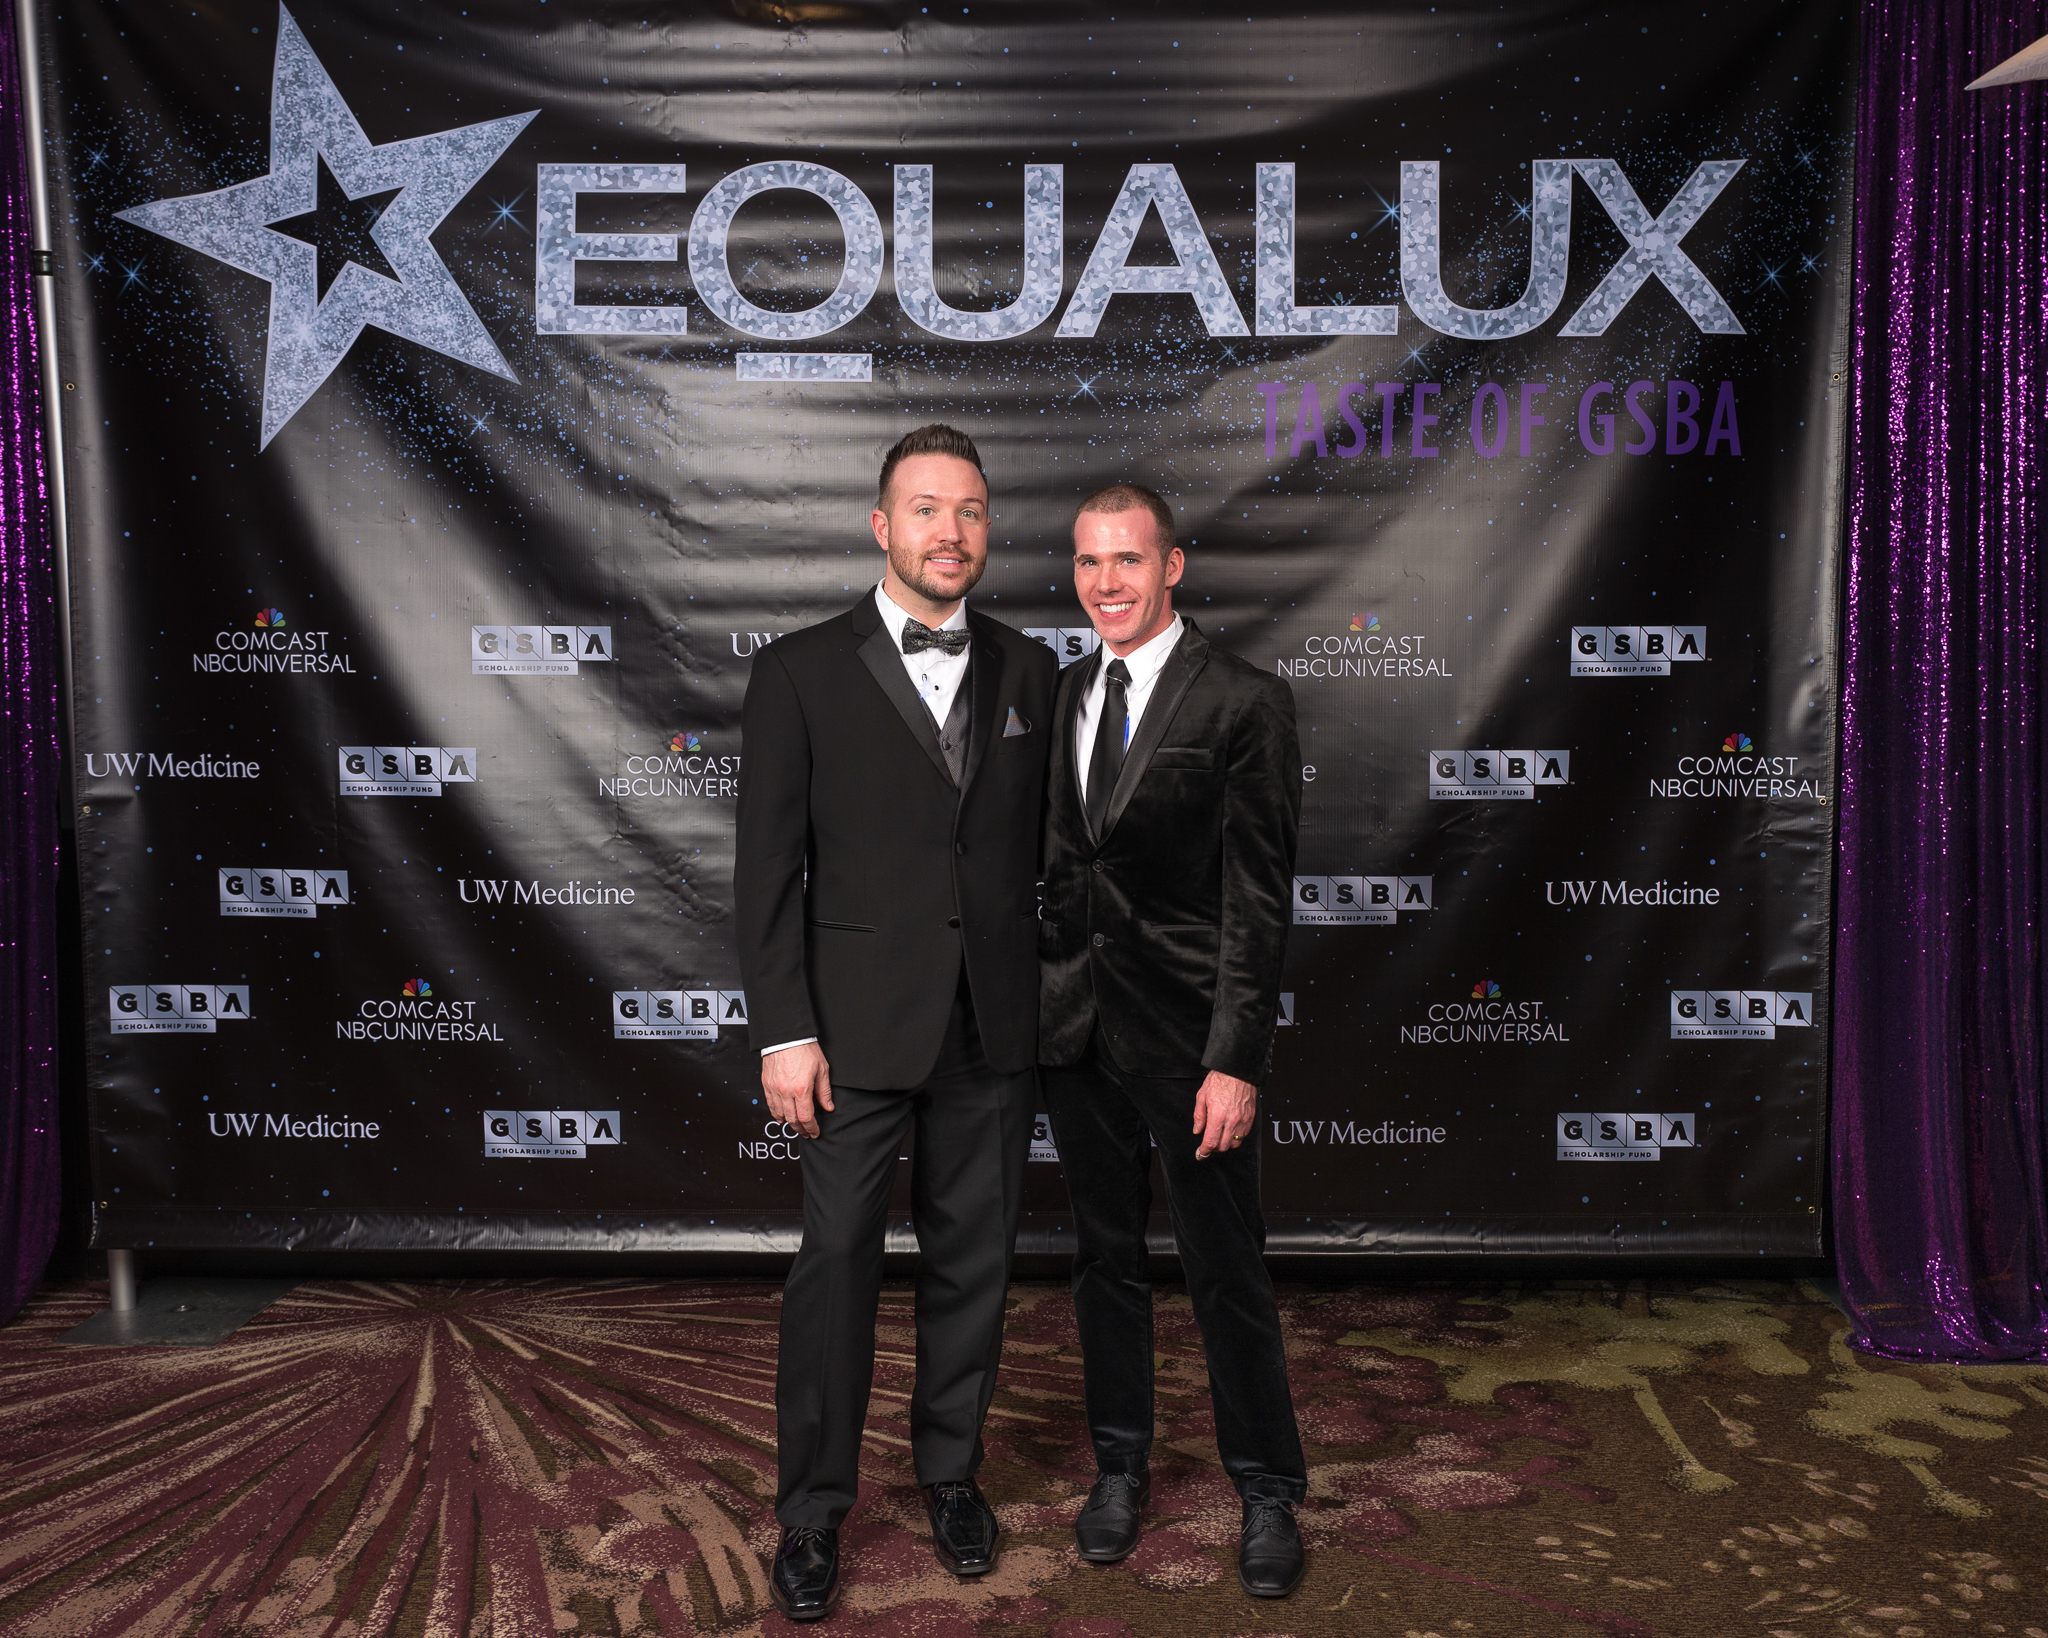 111718_GSBA EQUALUX at The Westin Seattle (Credit- Nate Gowdy)-50.jpg